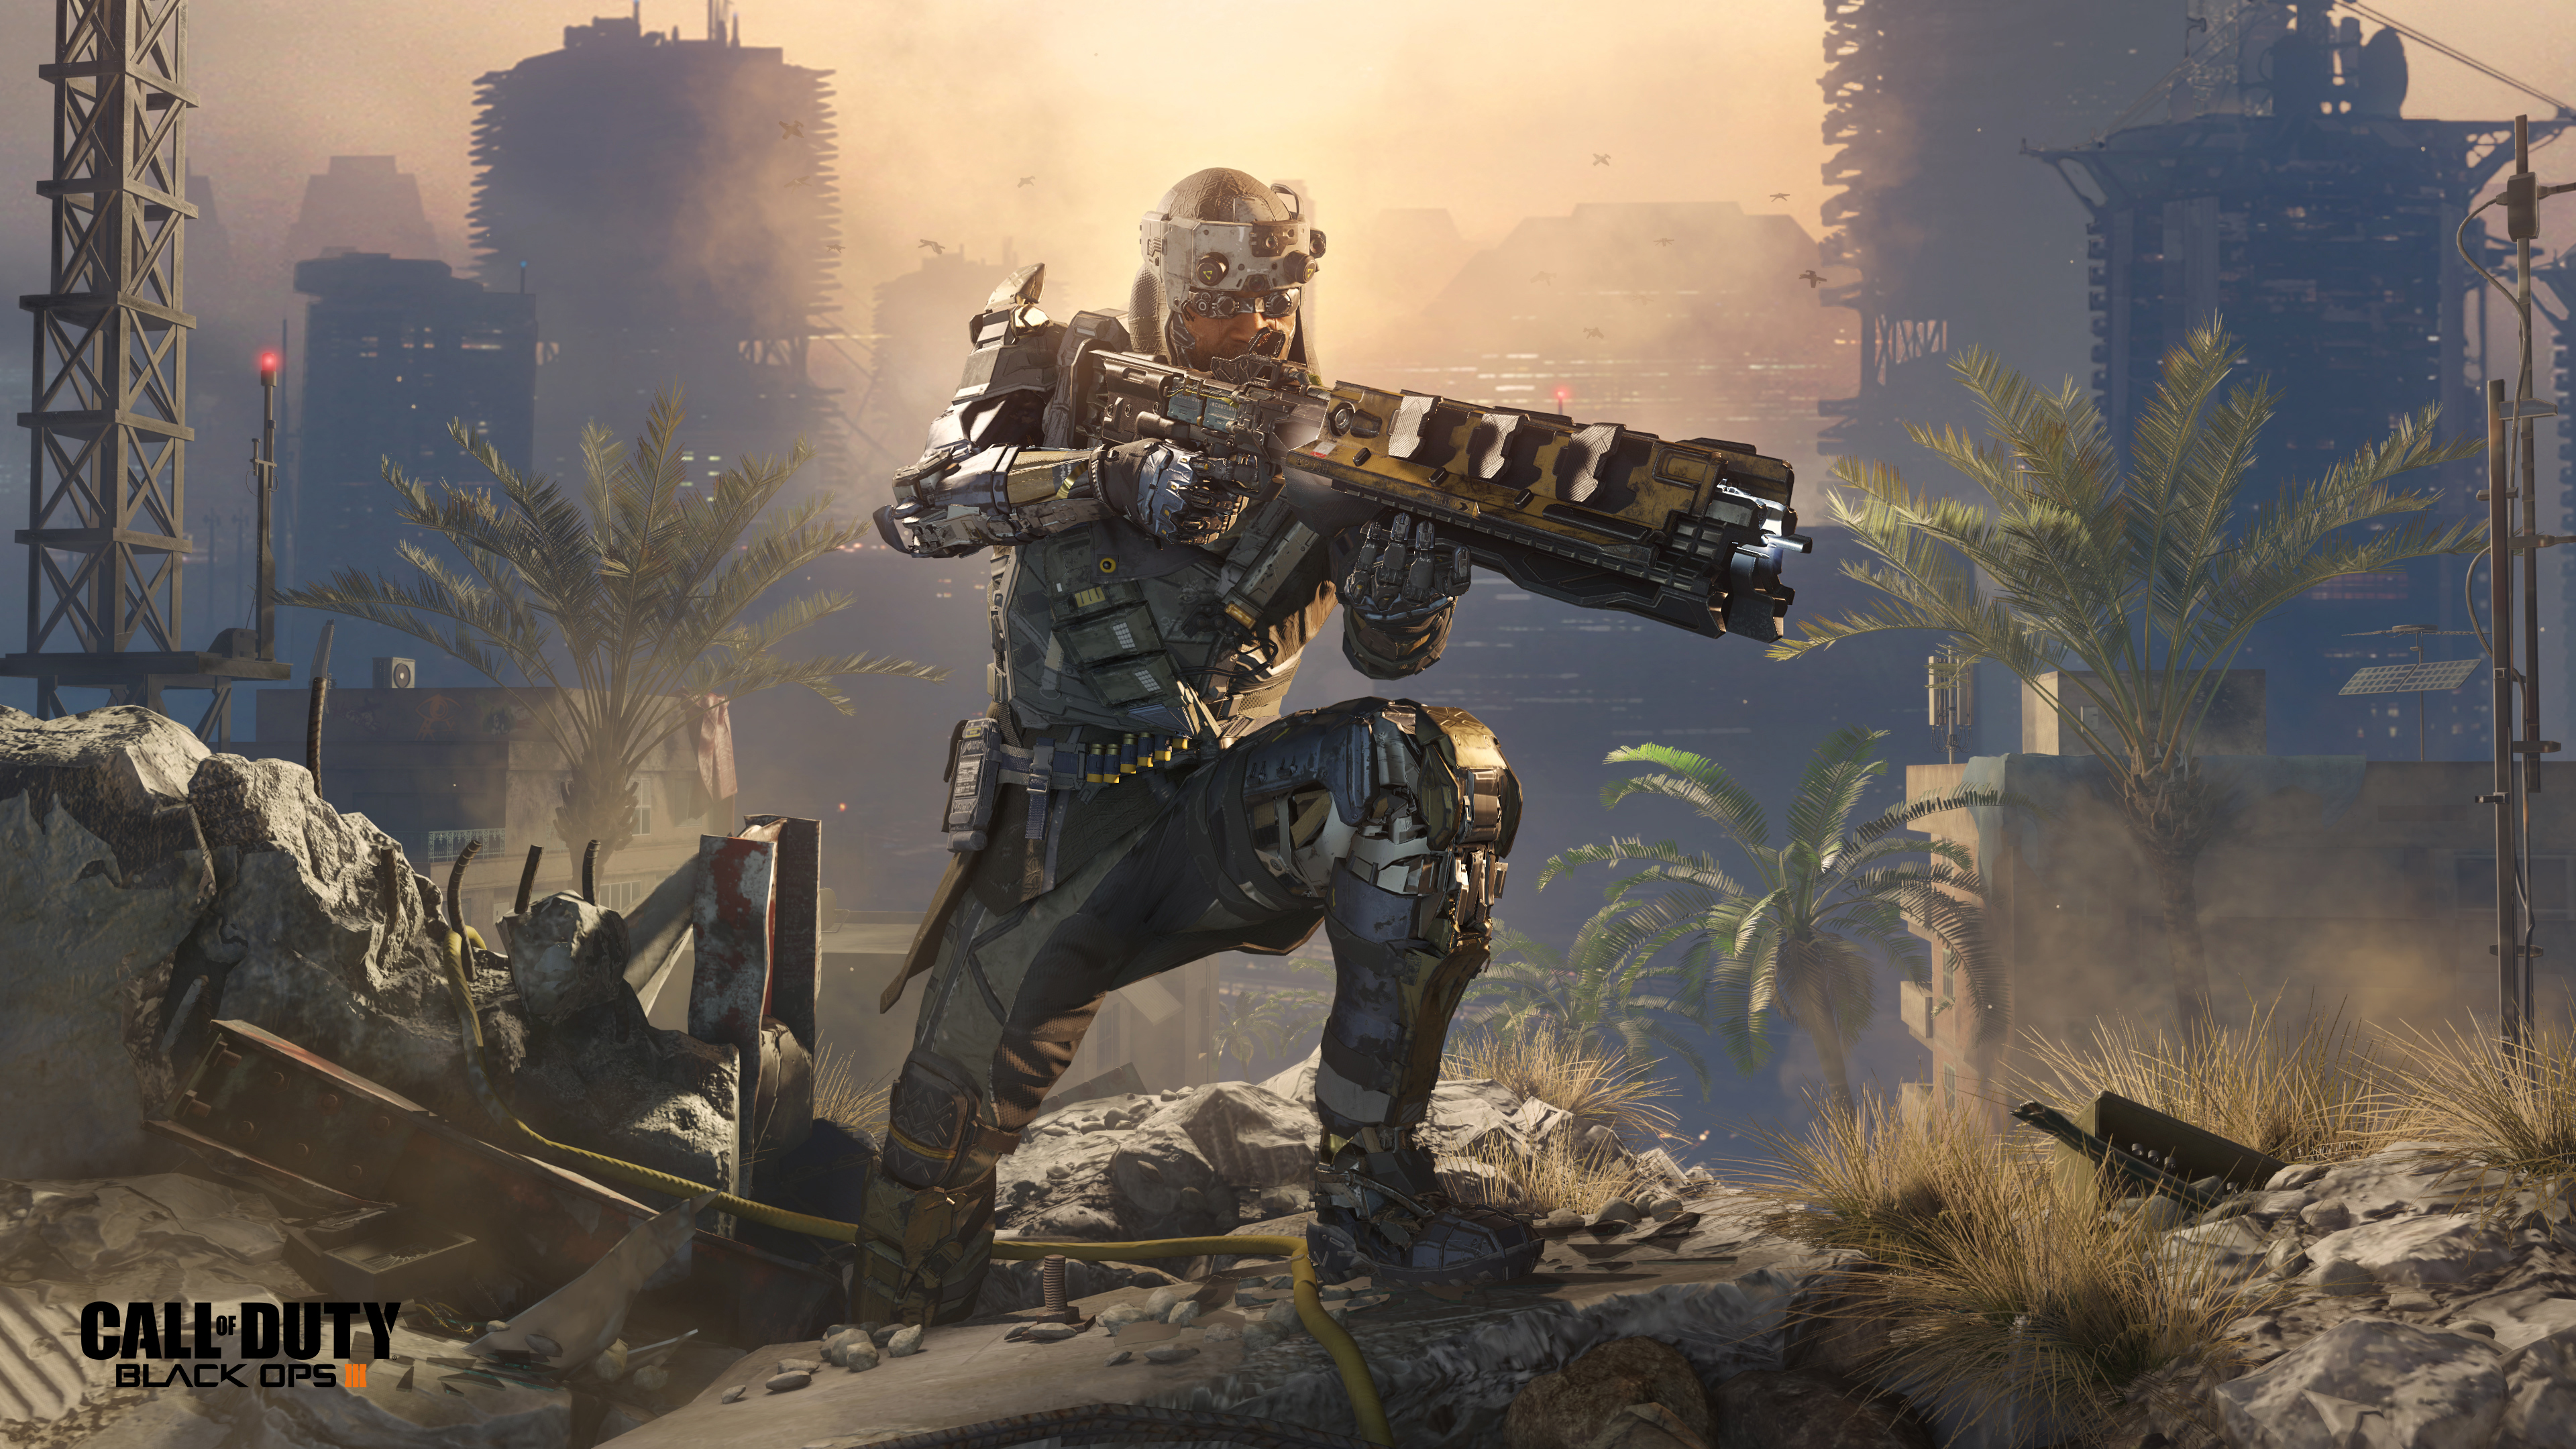 Black Ops 3 PC beta is live, we've just noticed